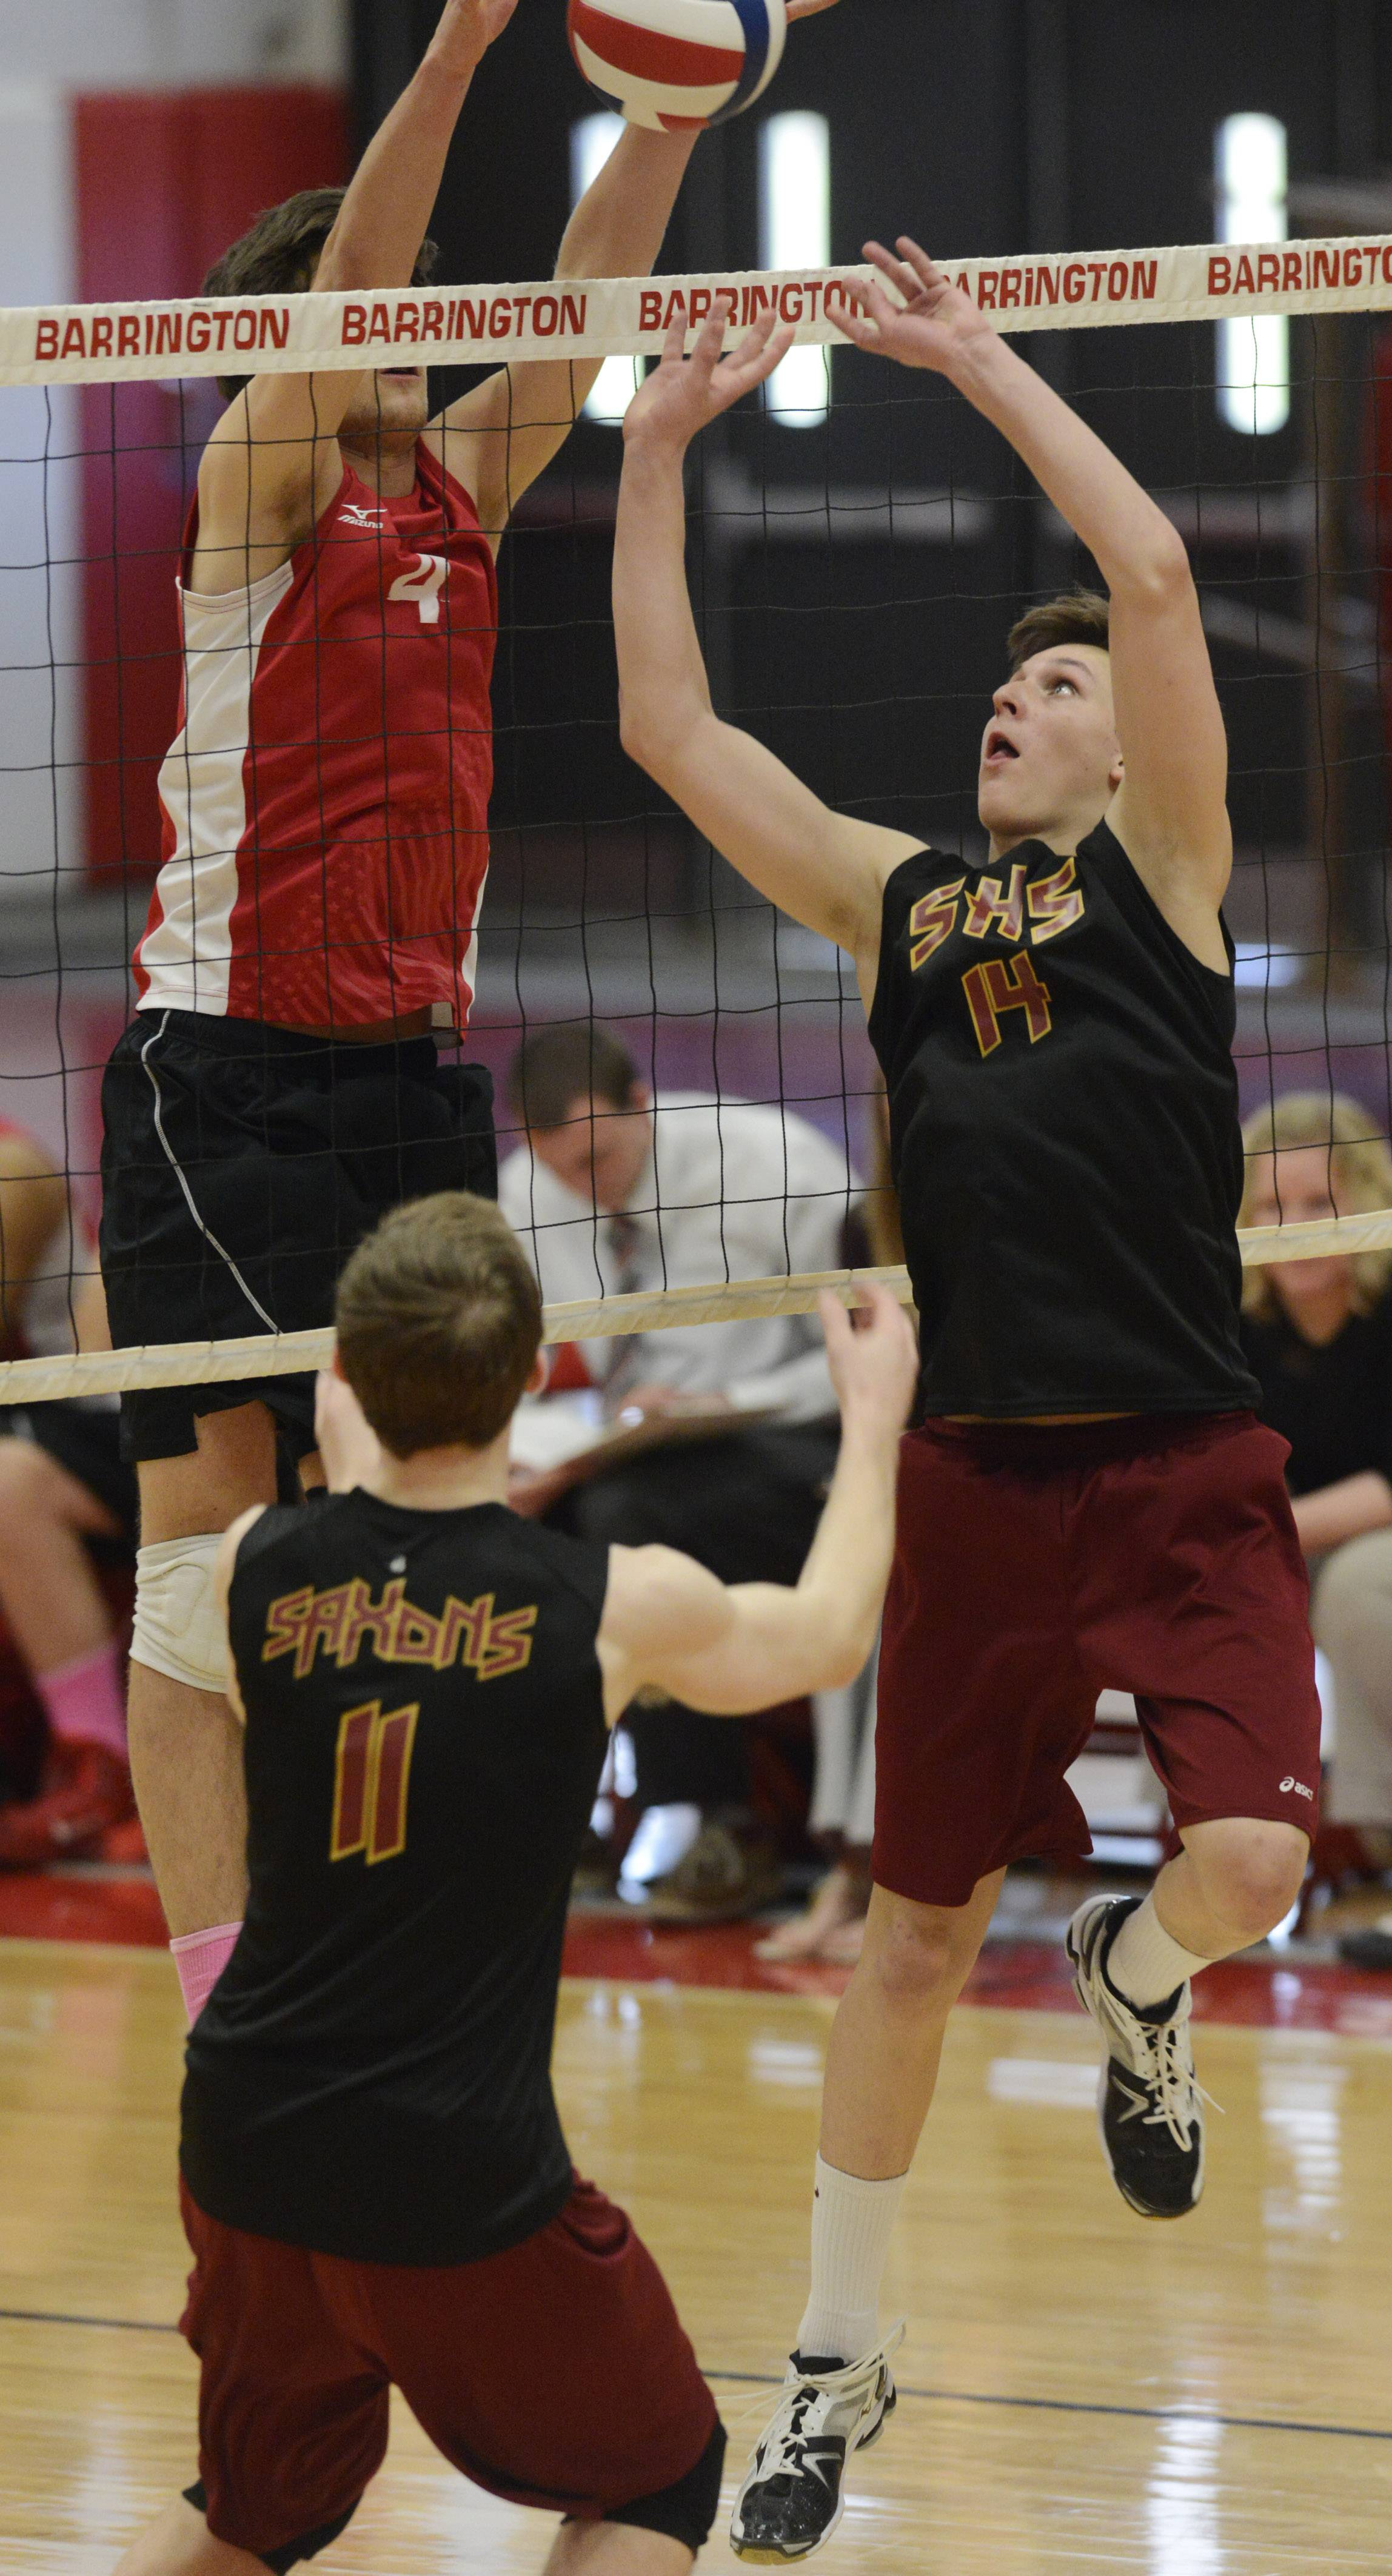 Schaumburg's Erik Kirschbaum, right, tries to tip the ball past Barrington's Adam Glader during Tuesday's volleyball match.